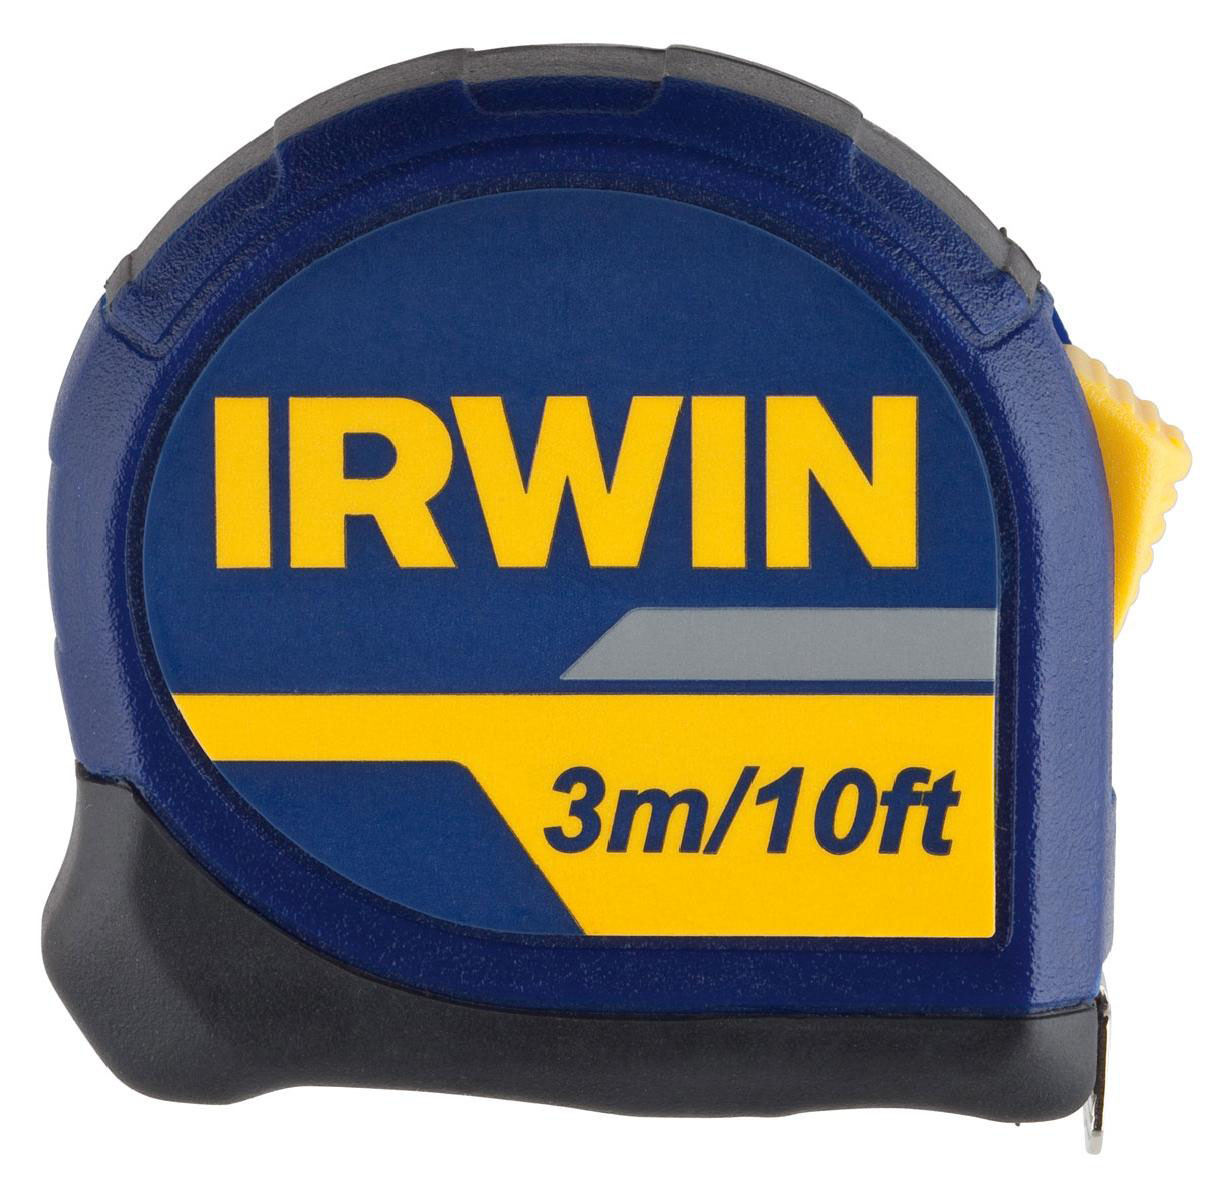 IRWIN 10507787 - Standard measuring tape 3m/10ft